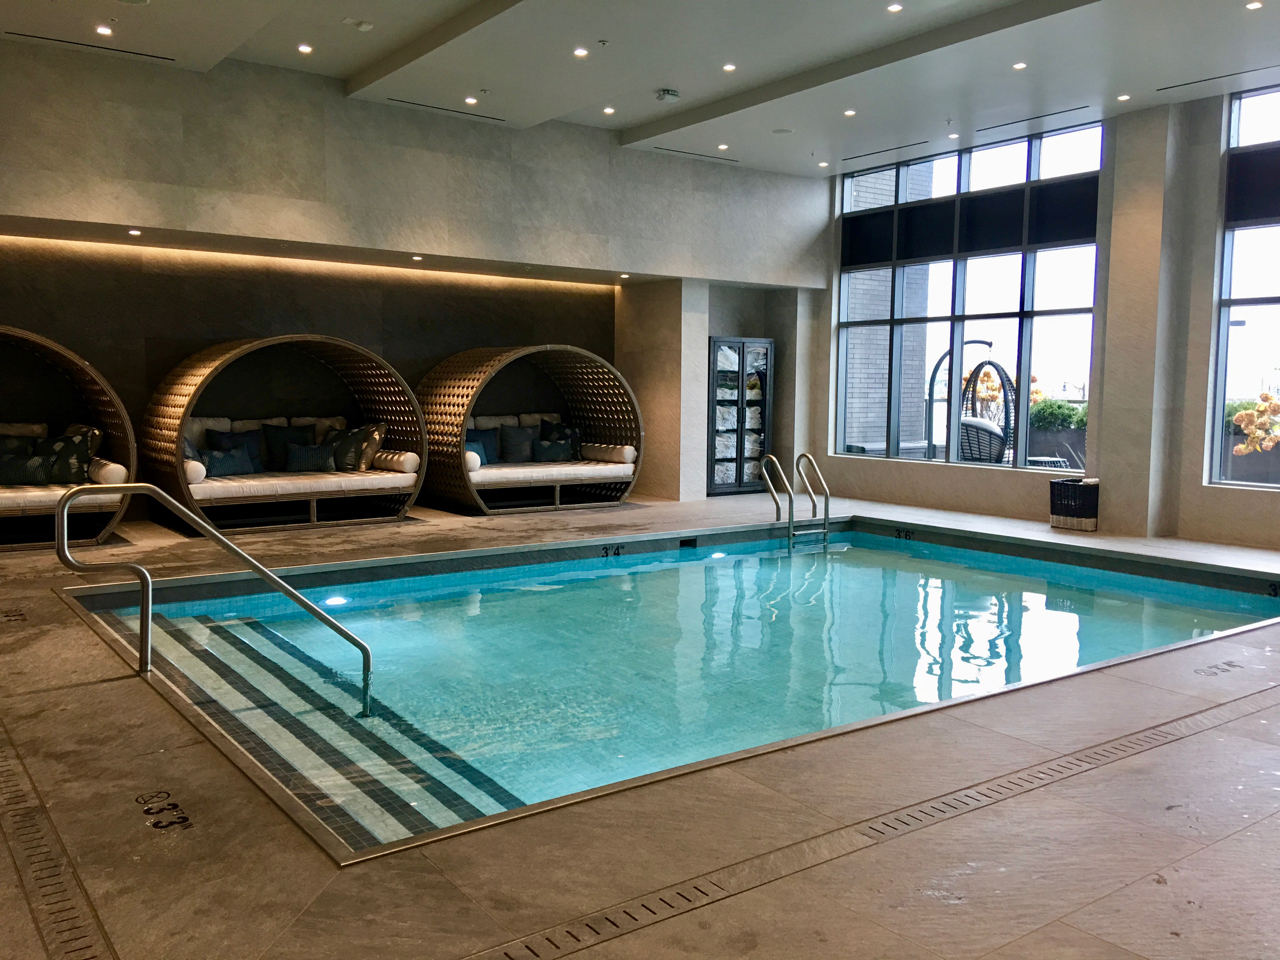 Swim, workout, catch rays at the wellness center